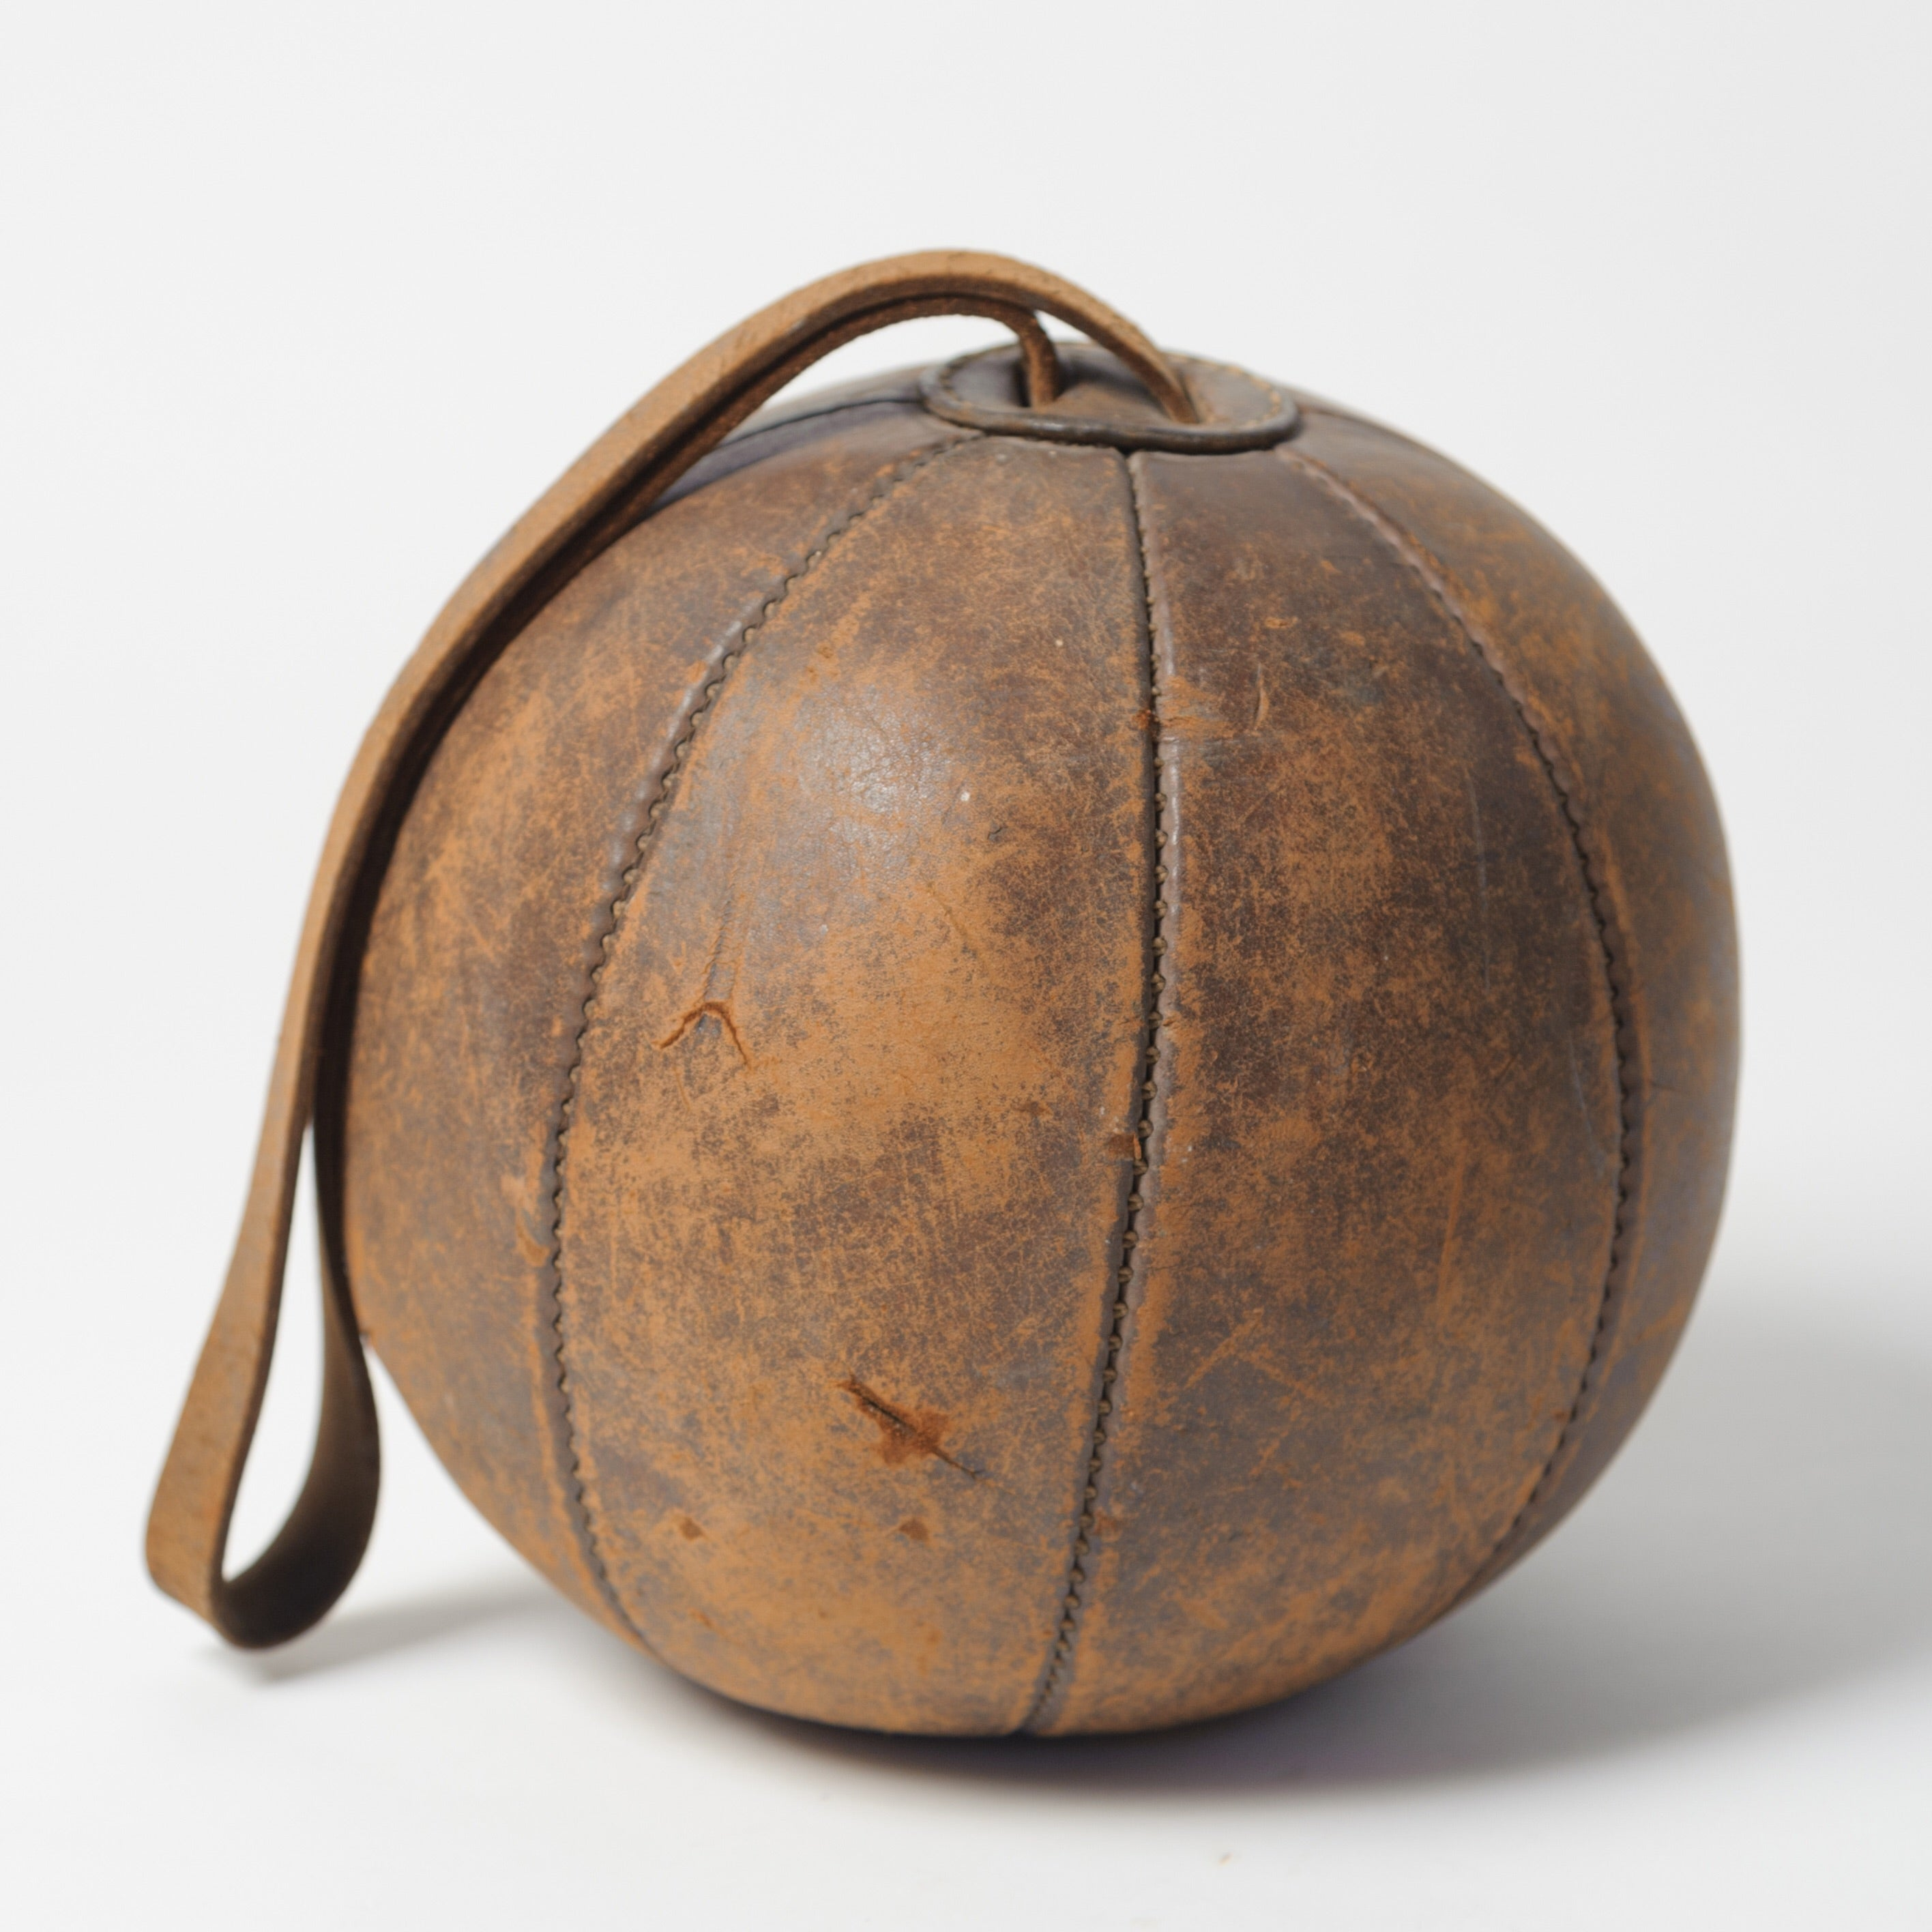 Vintage French Leather Boxing Ball circa 1920's – Decorative Antiques UK